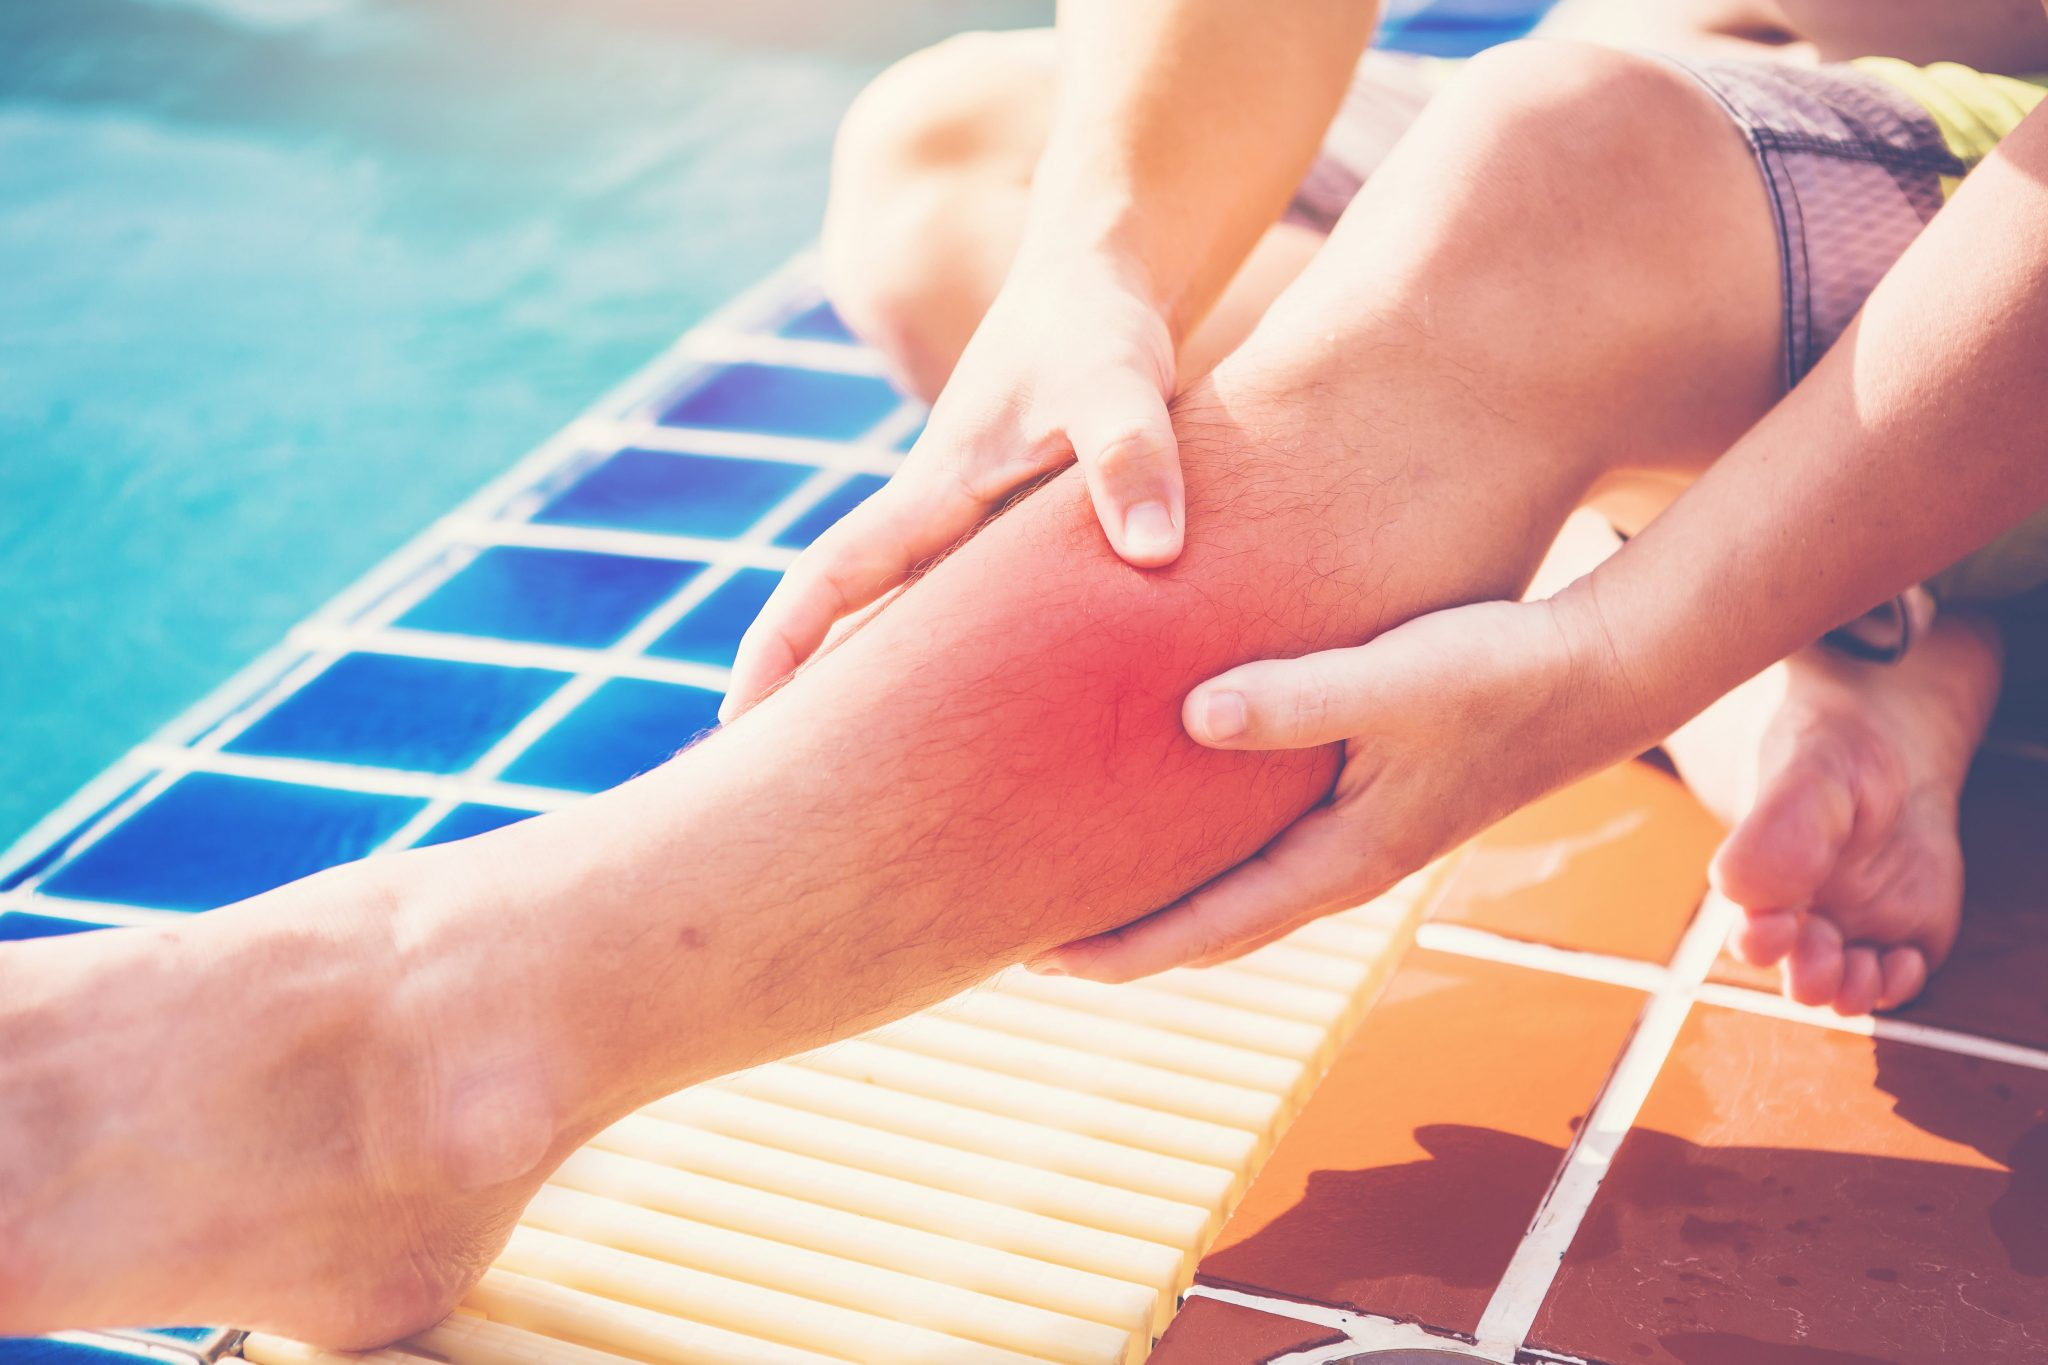 Pool injuries and liability